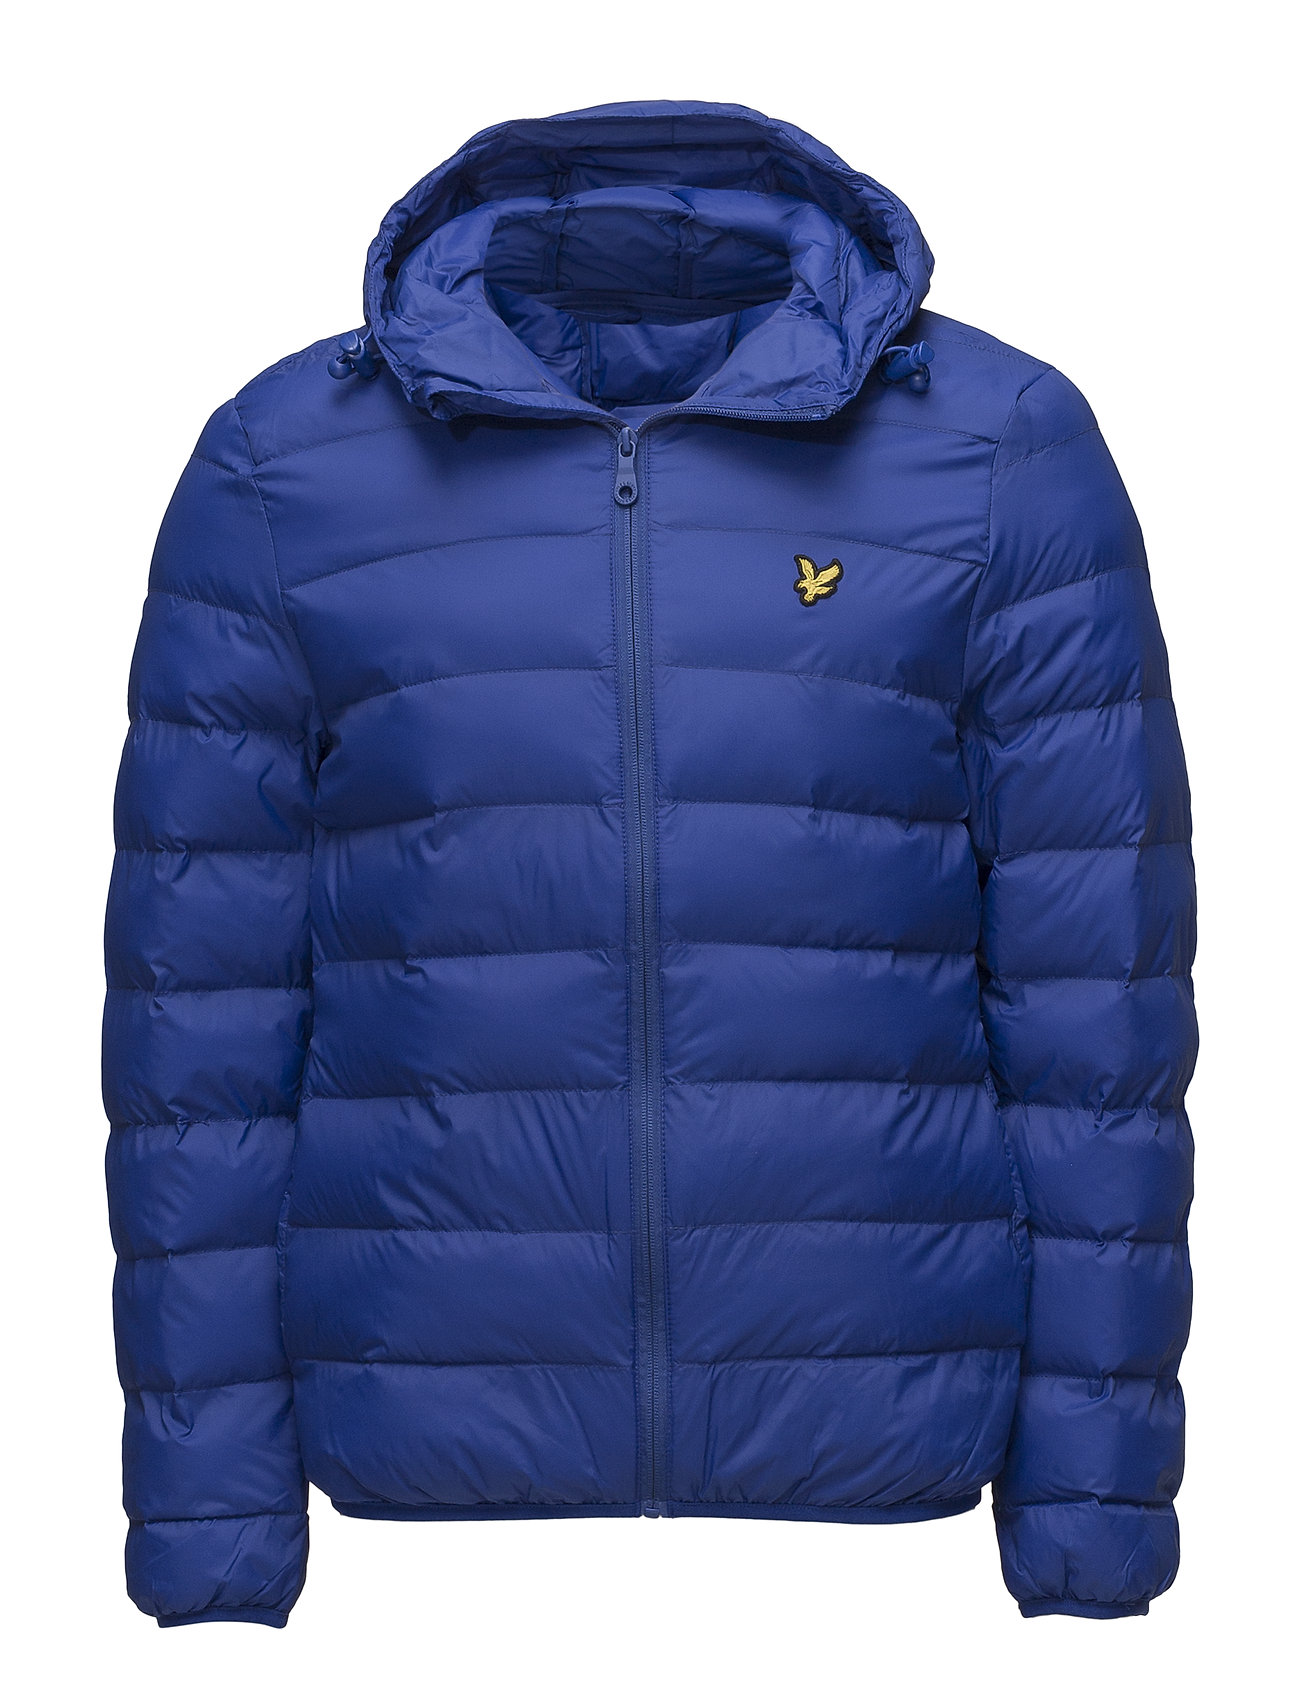 Lyle & Scott Lightweight Puffer Jacket - DUKE BLUE